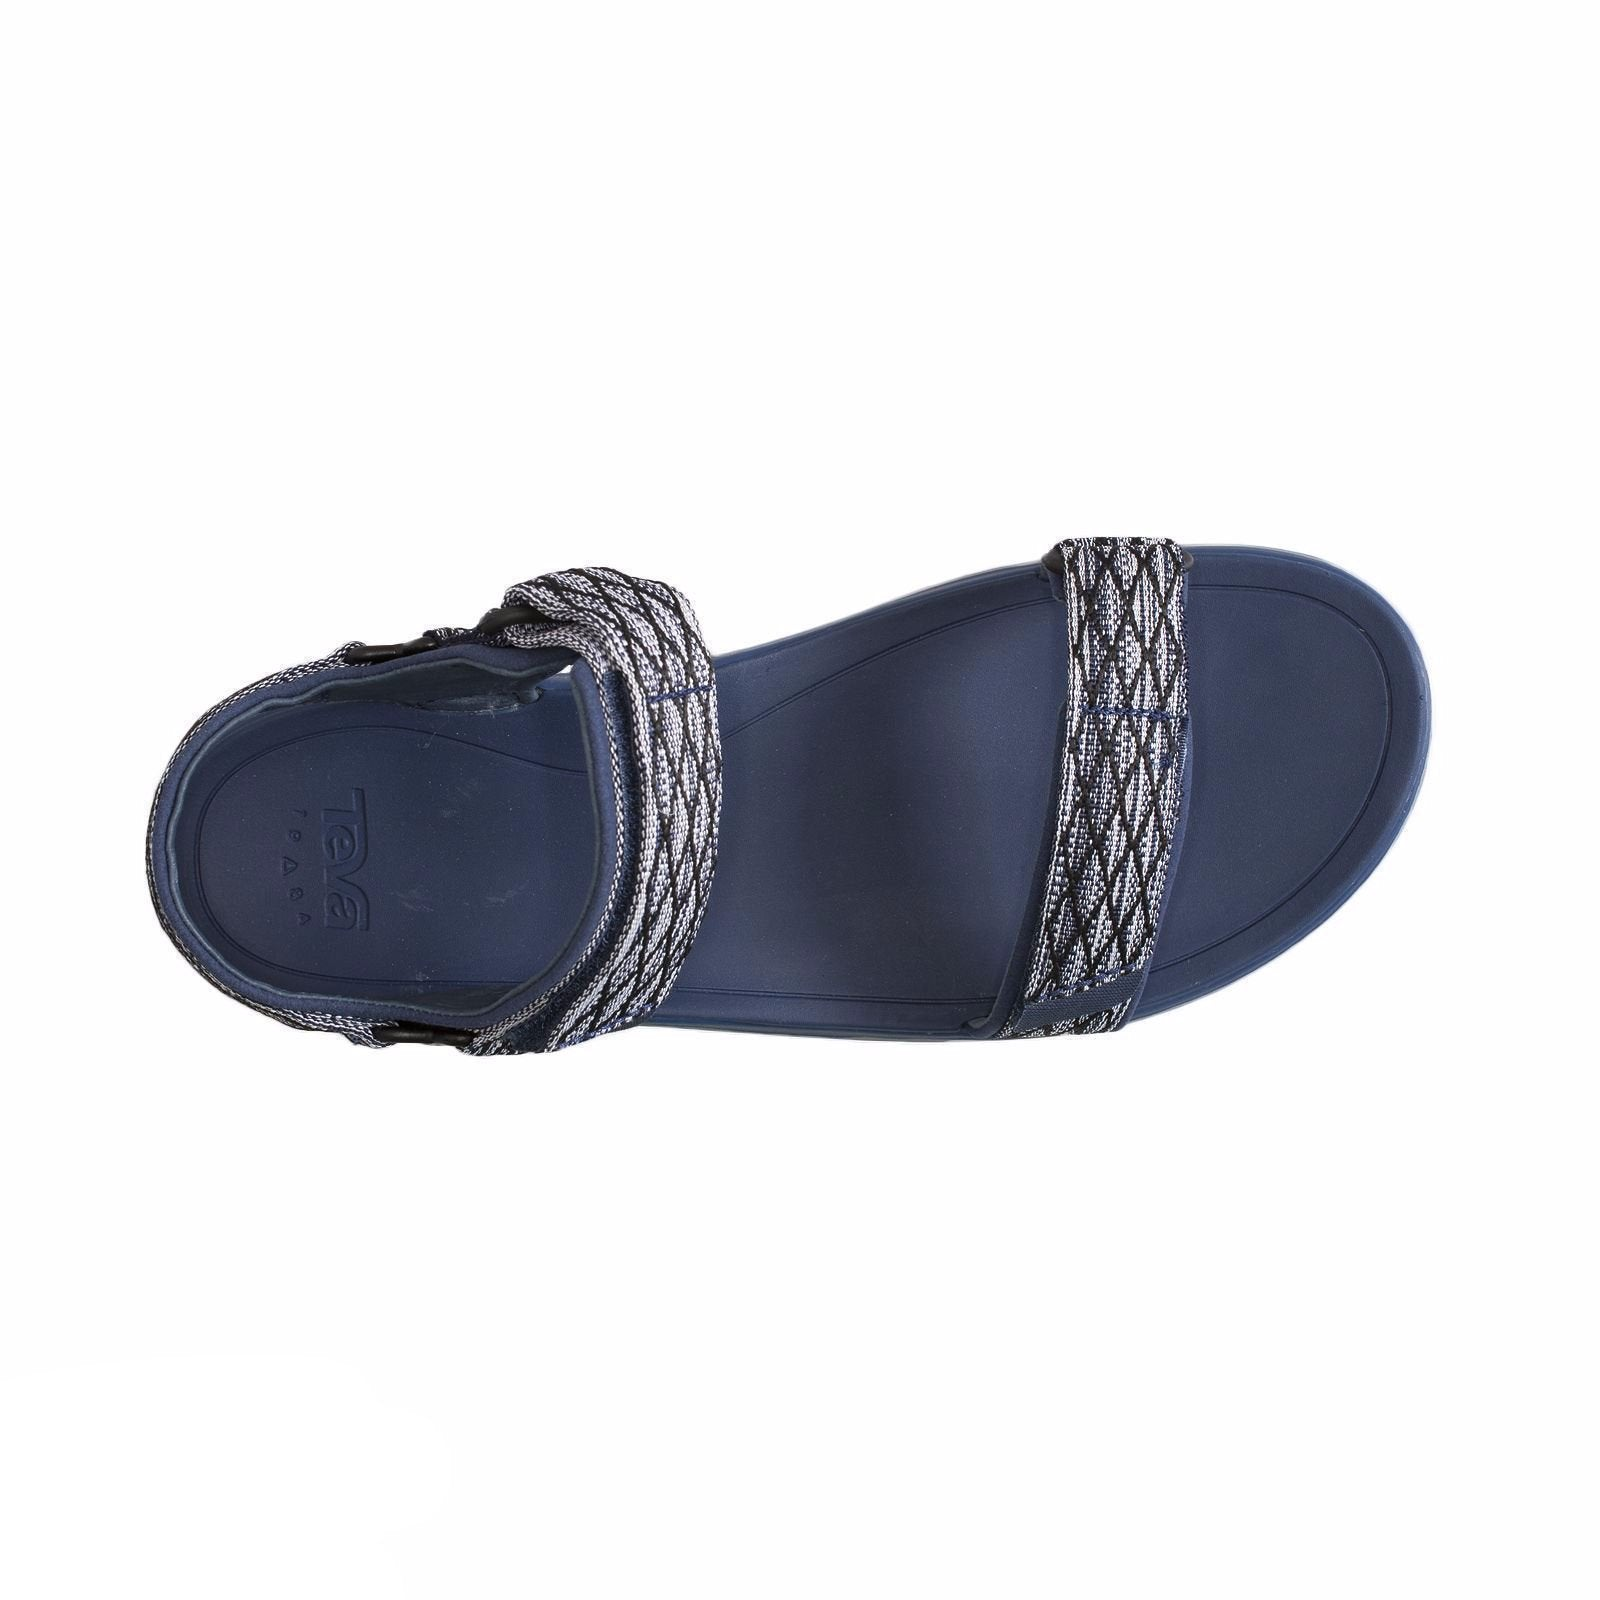 07b5bb597c27 Teva Terra Float Universal Navy Sandals - MyCozyBoots